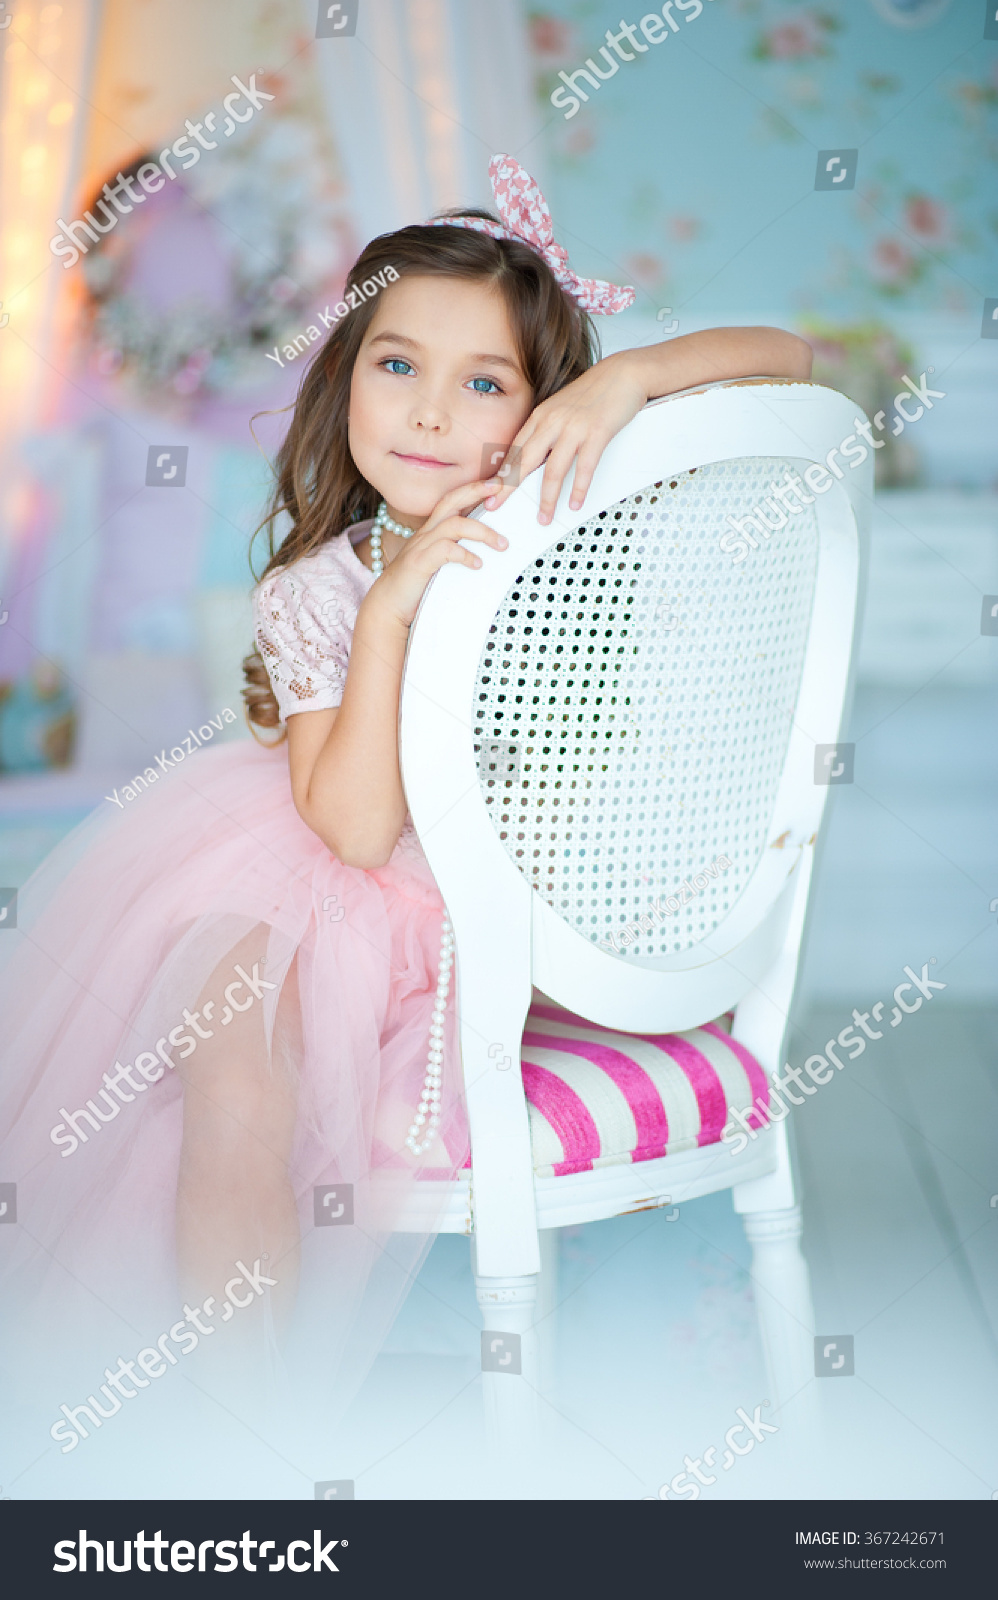 Möbel Im Shabby Look Beautiful Girl Style Shabby Chic Stock Photo Edit Now 367242671